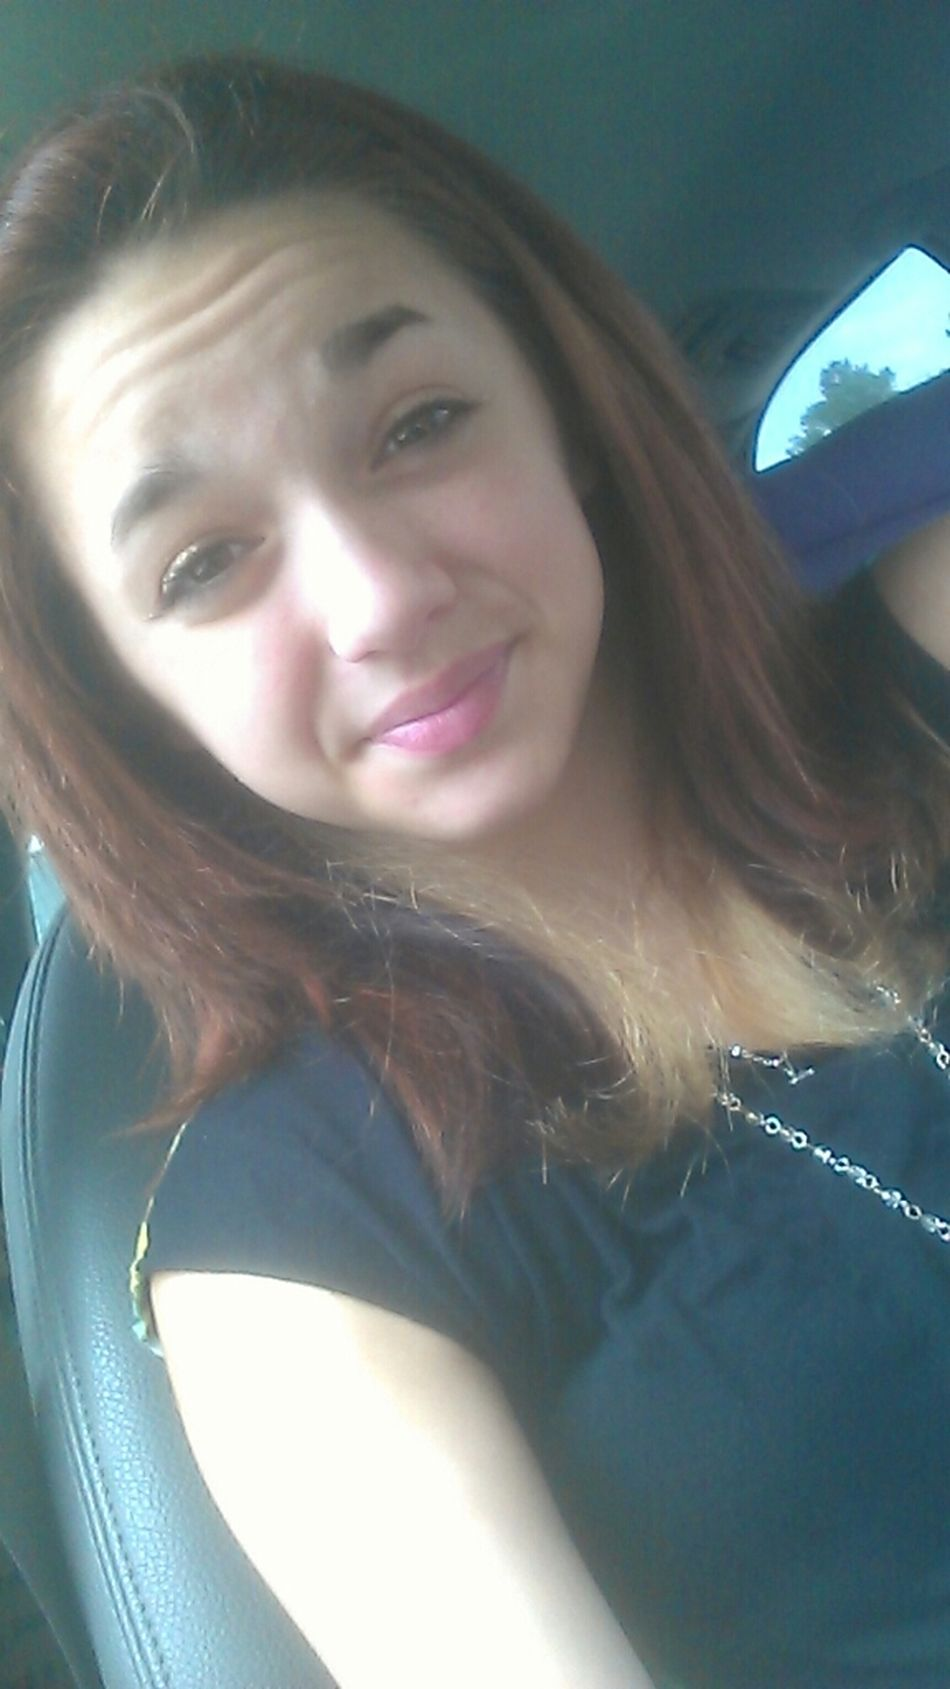 goin to the movies ,, and mall today .. get to see my best friend that moved away .. ^_^